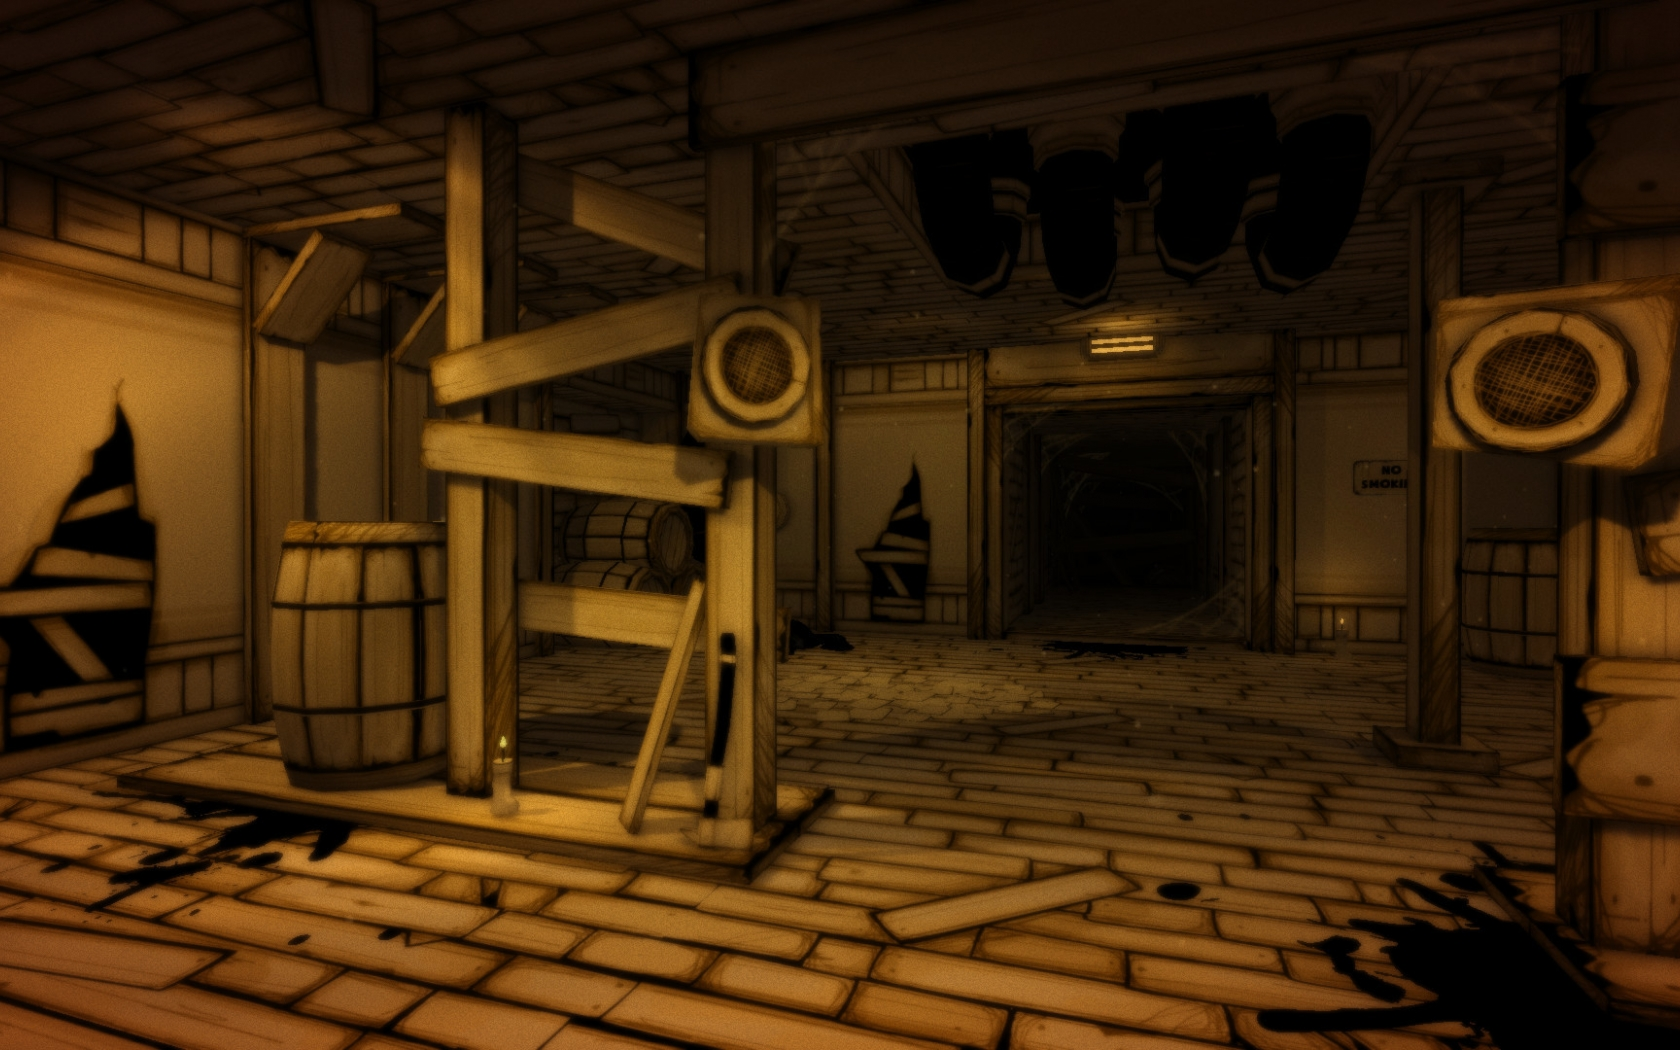 Bendy And The Ink Machine Background Posted By Sarah Thompson